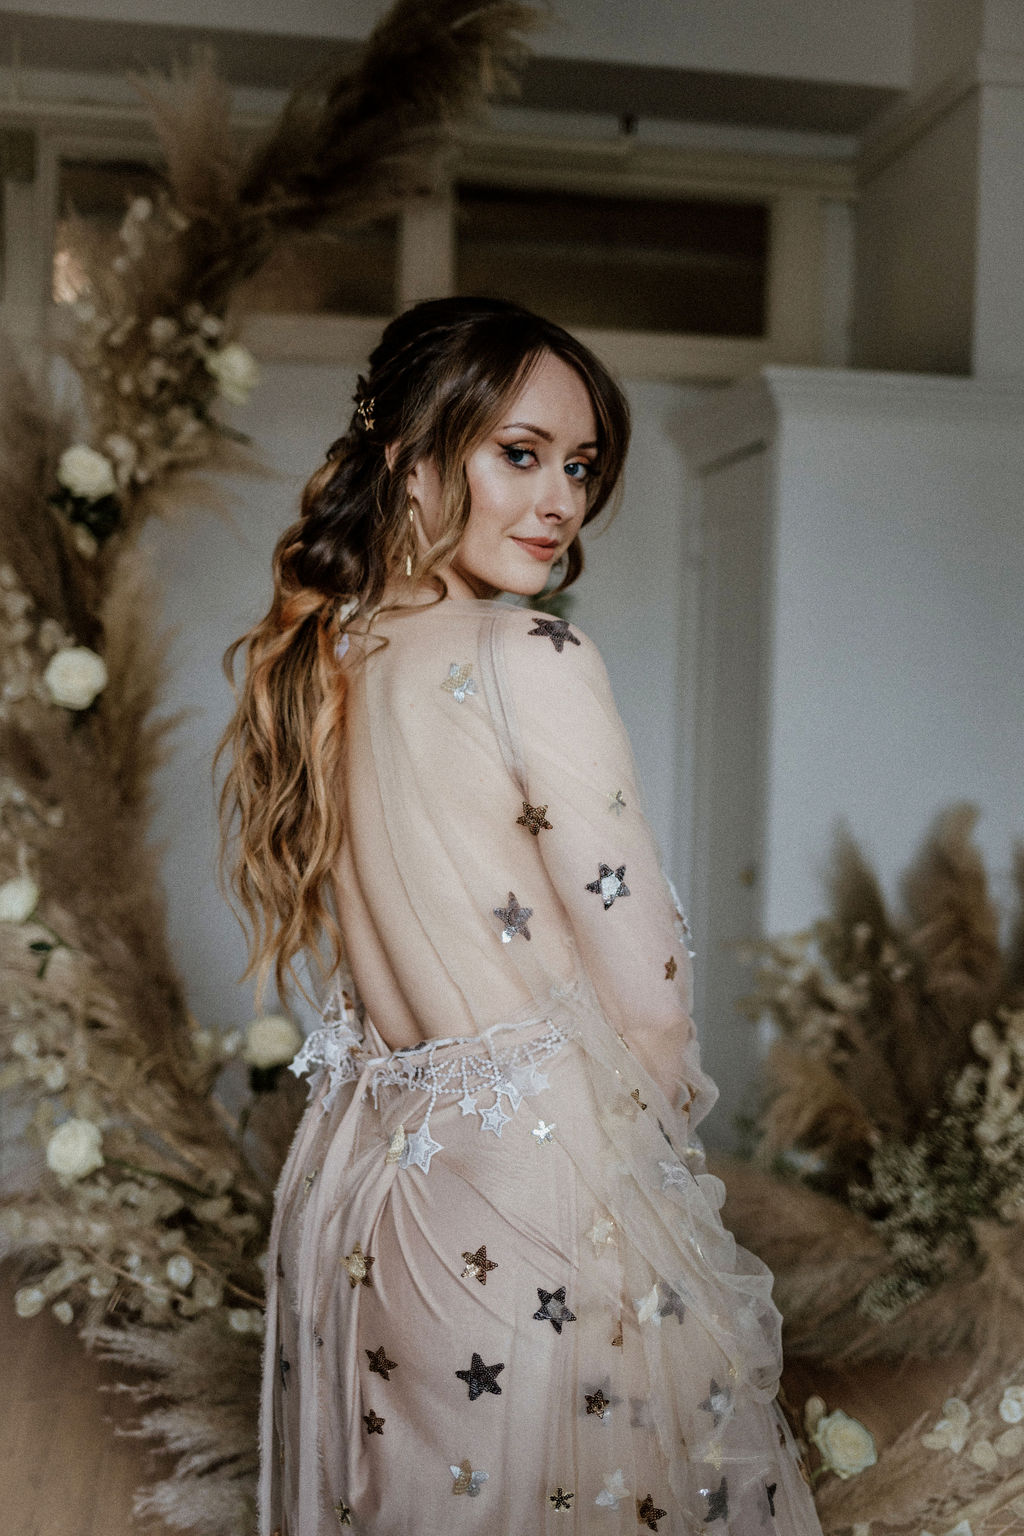 Bride wearing gold star gown by Flutters Dresses stands in front of pampas grass and white roses